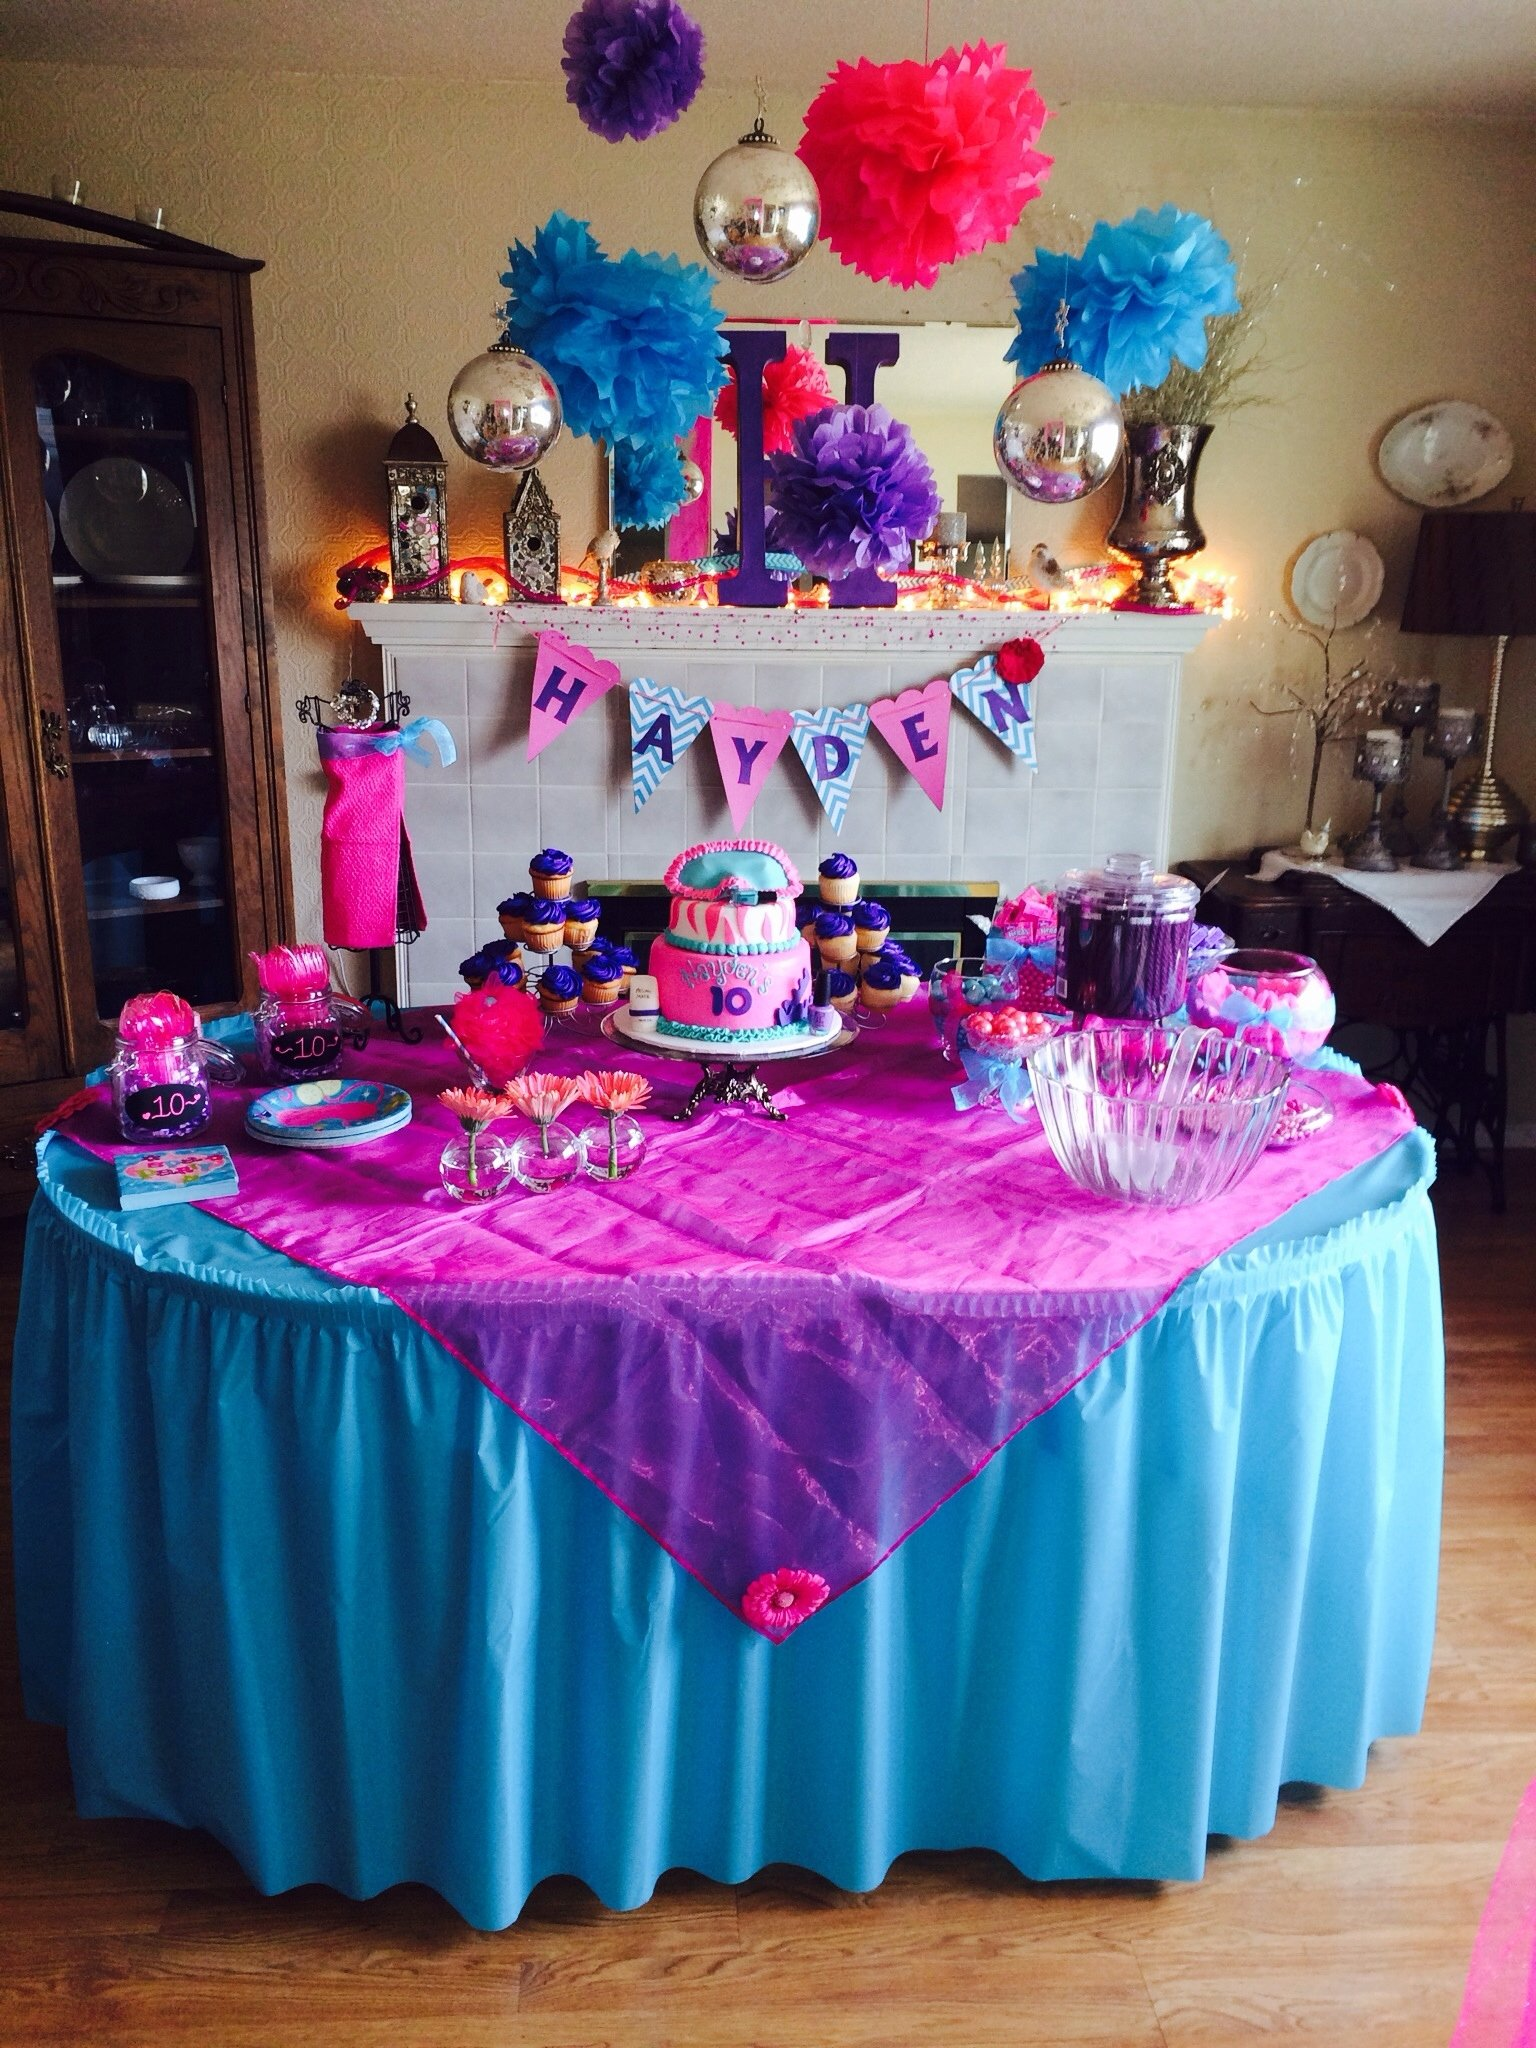 10 Nice 10Th Birthday Party Ideas For Girls rockstar party invitations girls 10th birthday party party ideas 2021